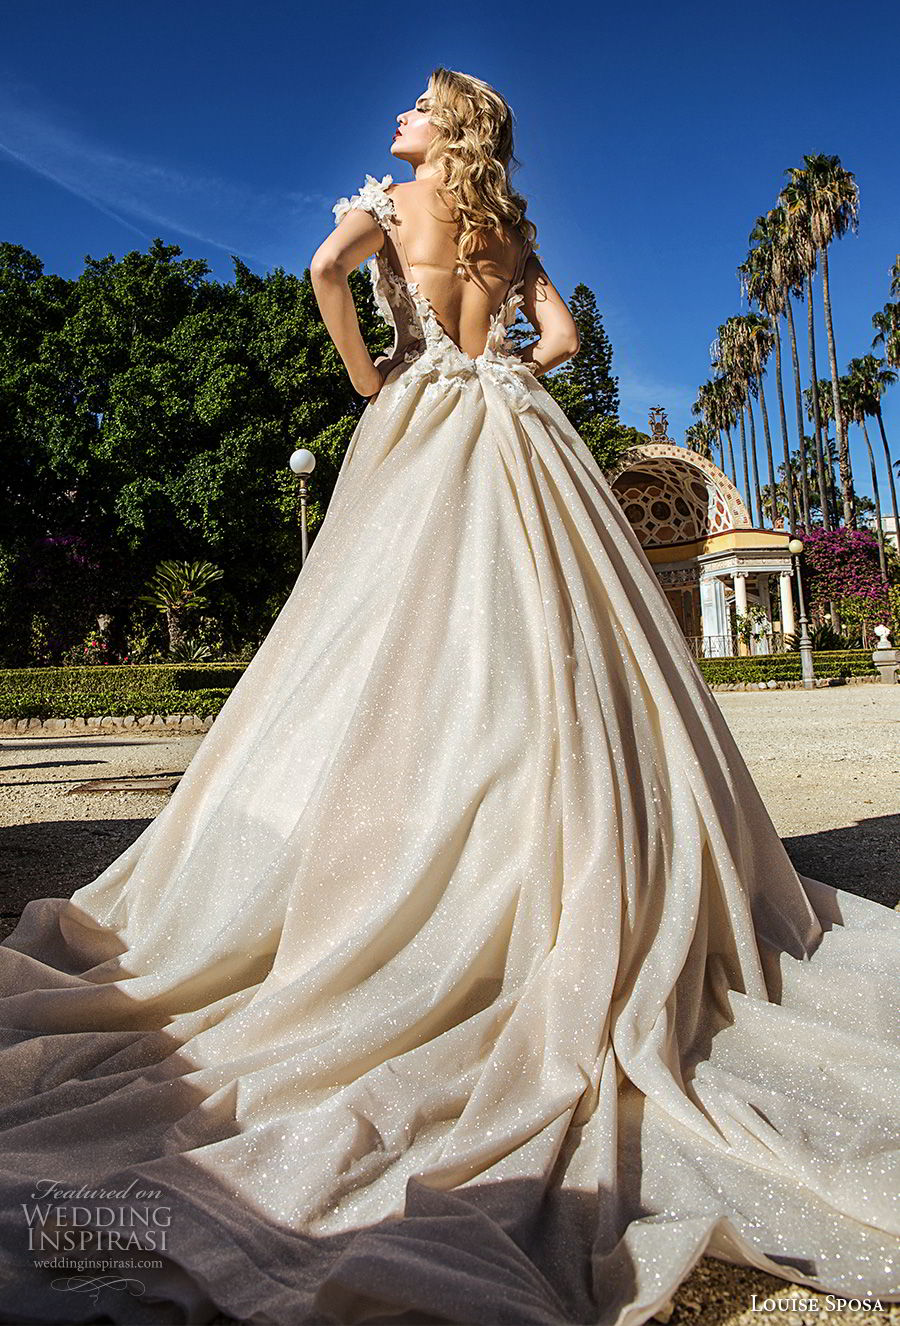 louise sposa 2018 bridal cap sleeves illusion bateau sweetheart neckline heaviy embellished bodice princess champagne color ball gown wedding dress open back royal train (24) bv